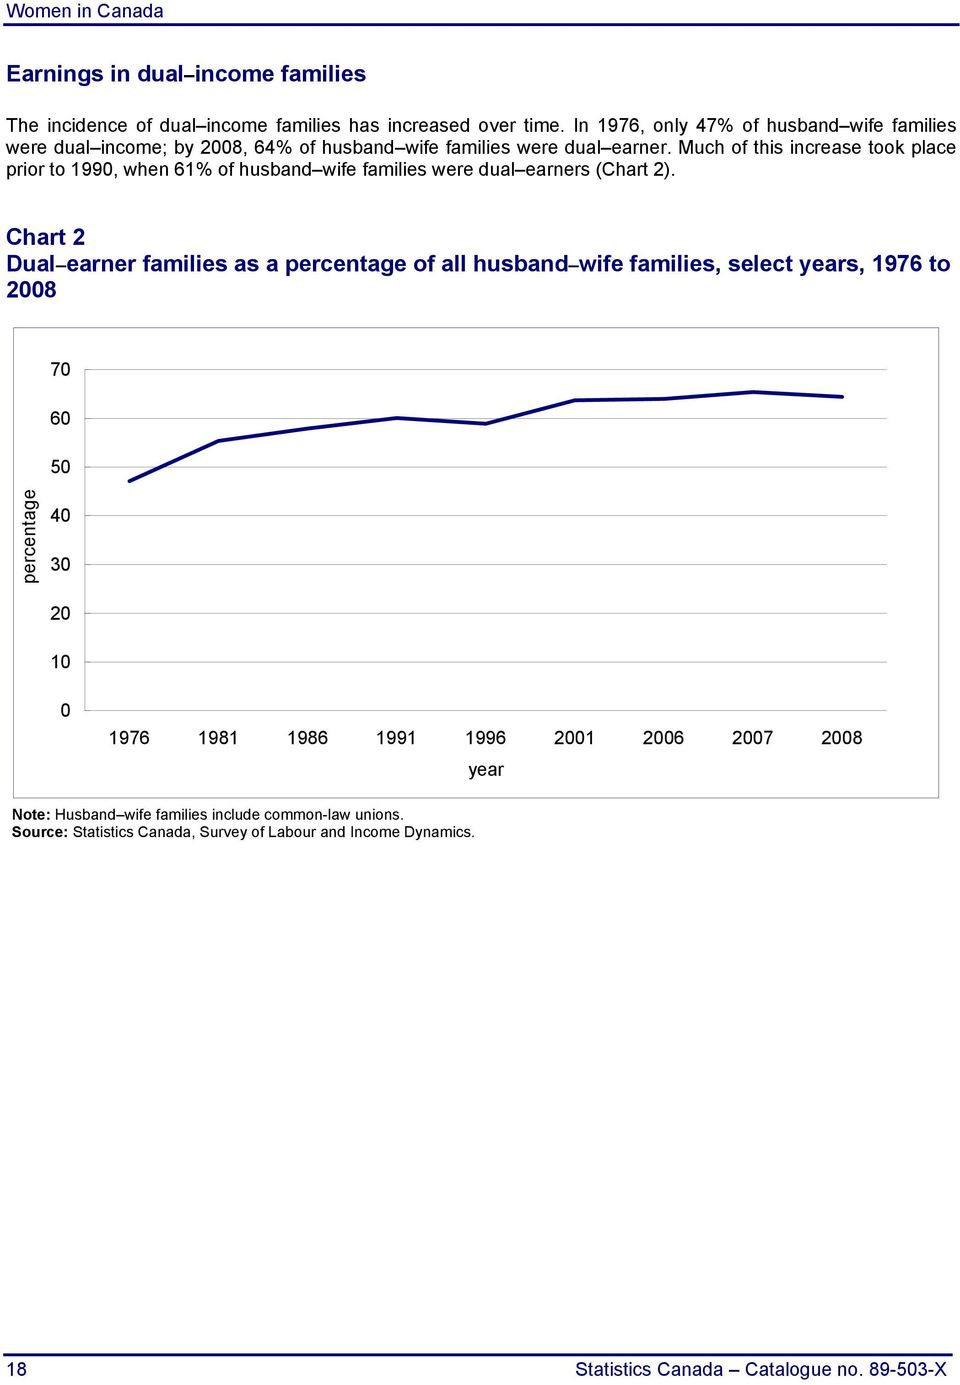 Much of this increase took place prior to 1990, when 61% of husband wife families were dual earners (Chart 2).